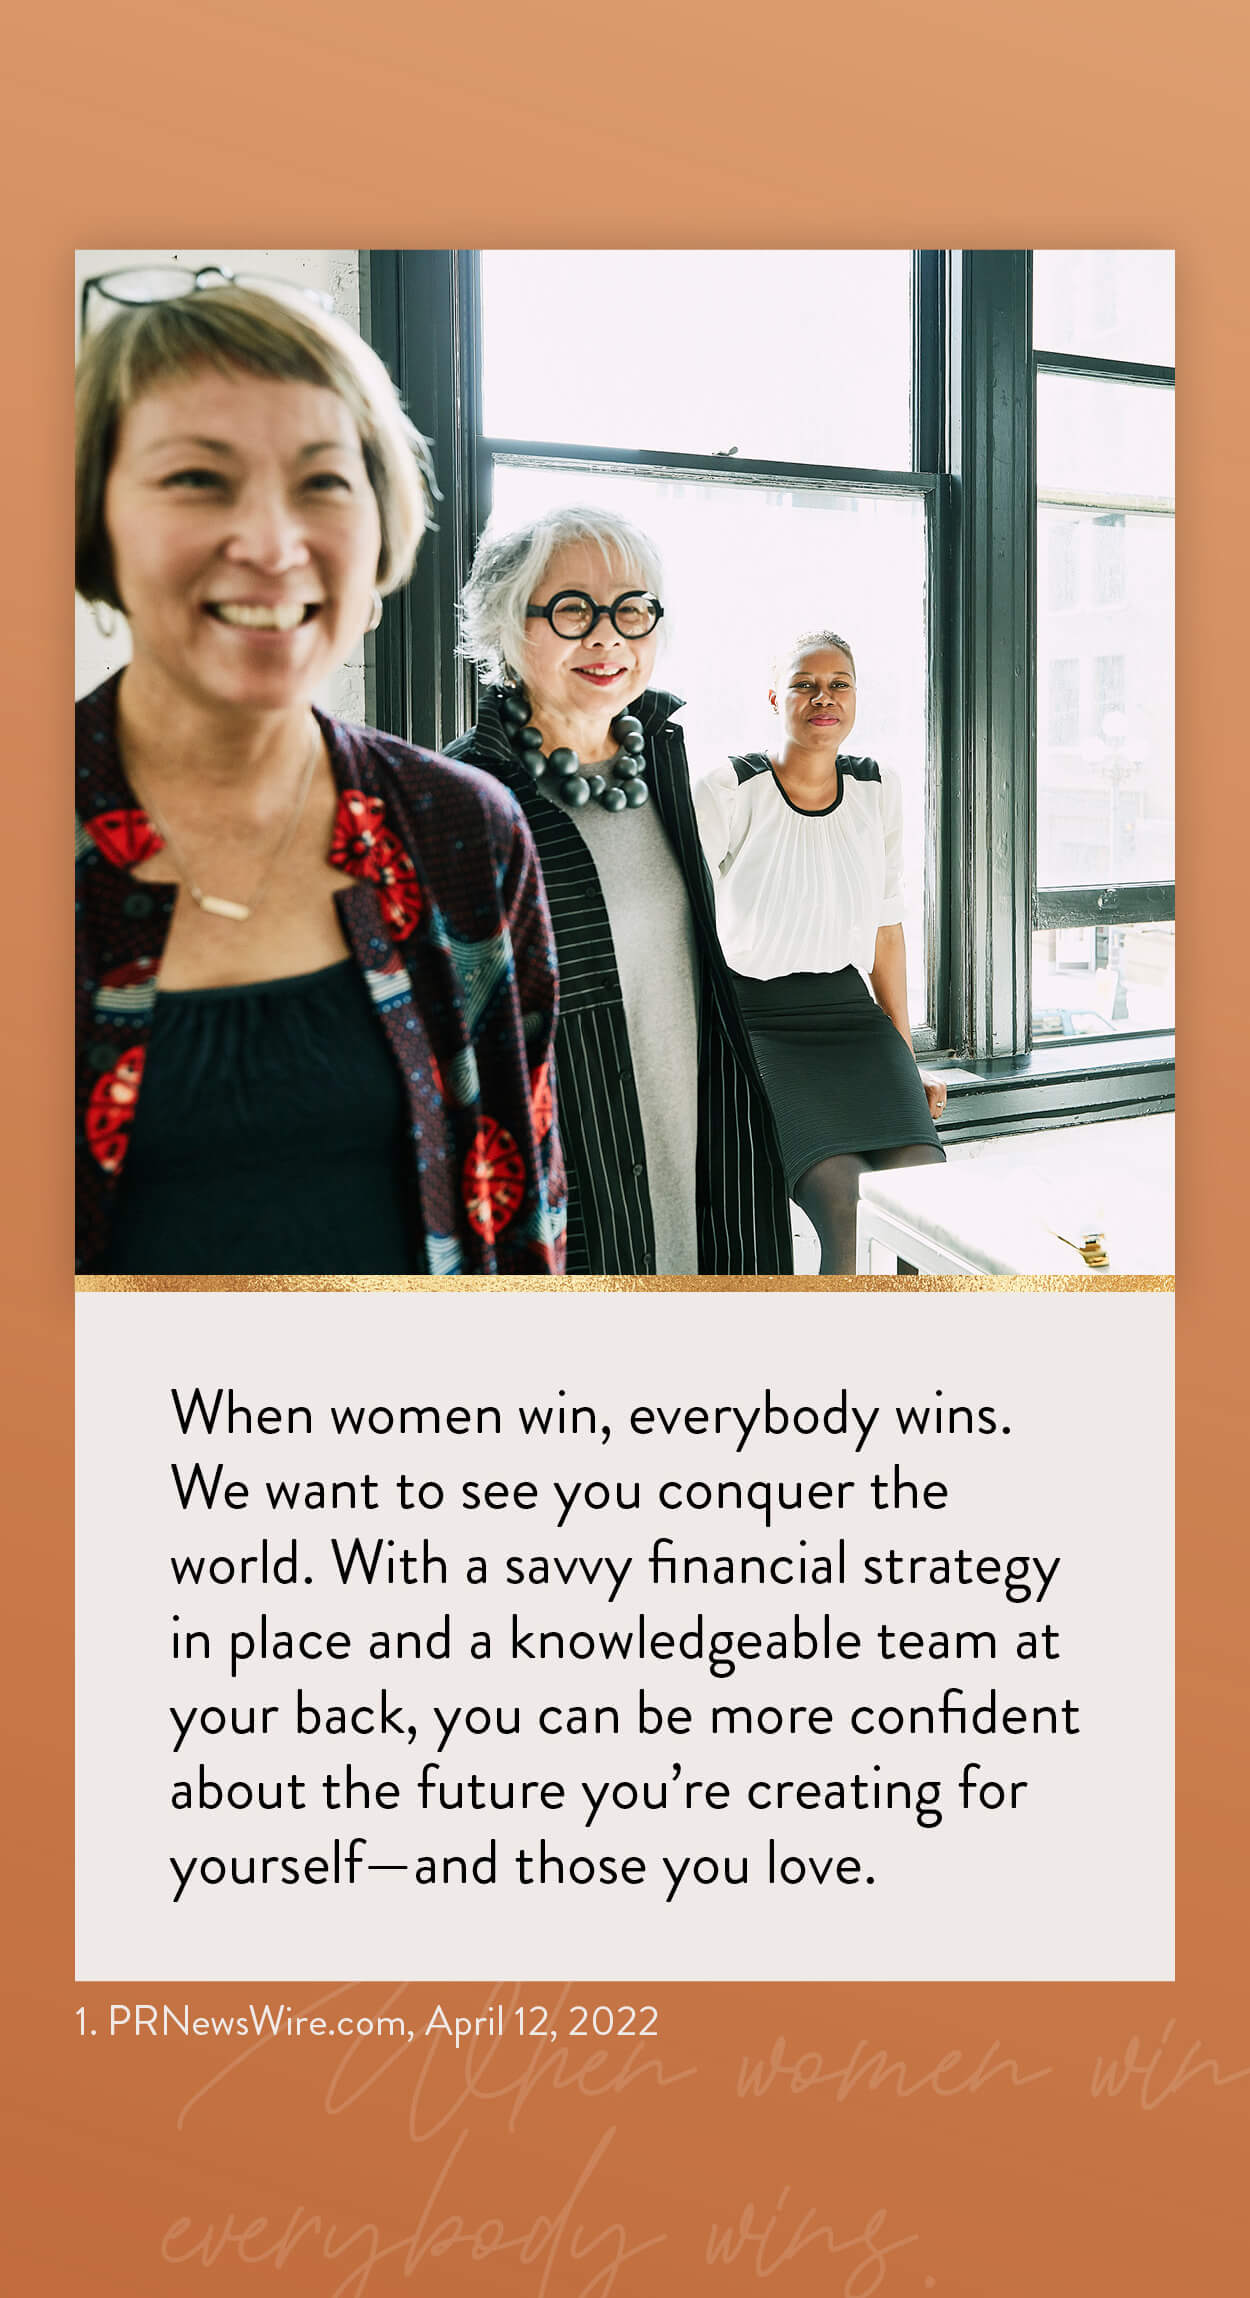 When women win, everybody wins. We want to see you conquer the world. With a savvy financial strategy in place and a knowledgeable team at your back, you can be more confident about the future you're creating for yourself–and those you love. 1. kiplinger.com, November 16, 2020 https://www.kiplinger.com/personal-finance/601731/flying-solo-5-financial-strategies-every-single-woman-should-know